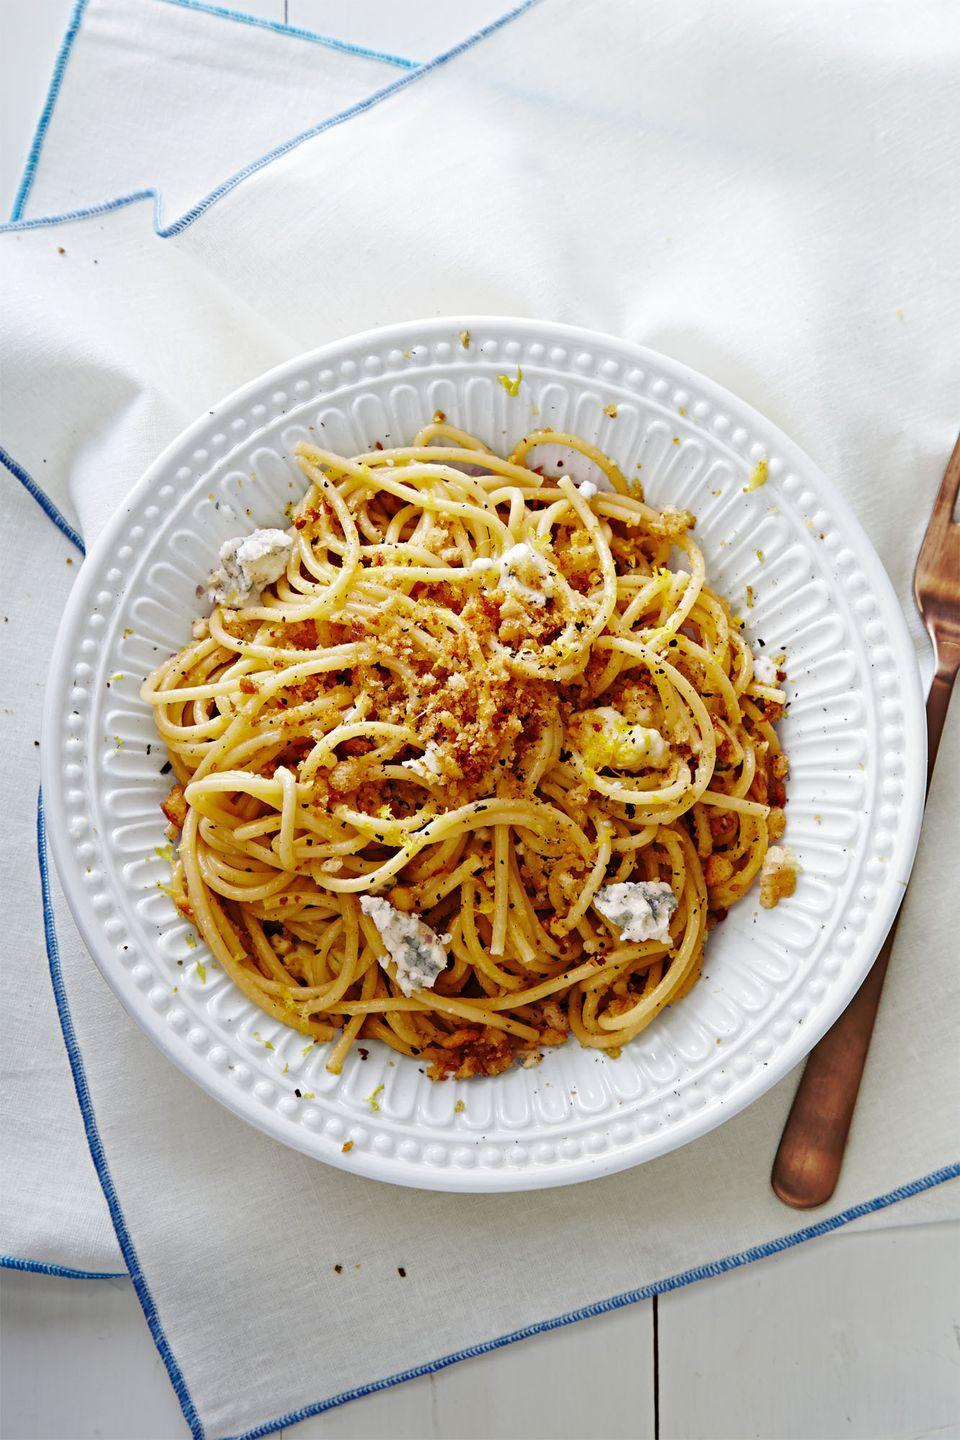 """<p>Looking for a last-minute romantic dinner idea? This dish has only seven ingredients and is ready in 10 minutes. You're welcome.</p><p><a href=""""https://www.goodhousekeeping.com/food-recipes/easy/a34559/blue-cheese-lemon-pasta/"""" rel=""""nofollow noopener"""" target=""""_blank"""" data-ylk=""""slk:Get the recipe for Blue Cheese Lemon Pasta »"""" class=""""link rapid-noclick-resp""""><em>Get the recipe for Blue Cheese Lemon Pasta »</em></a></p>"""